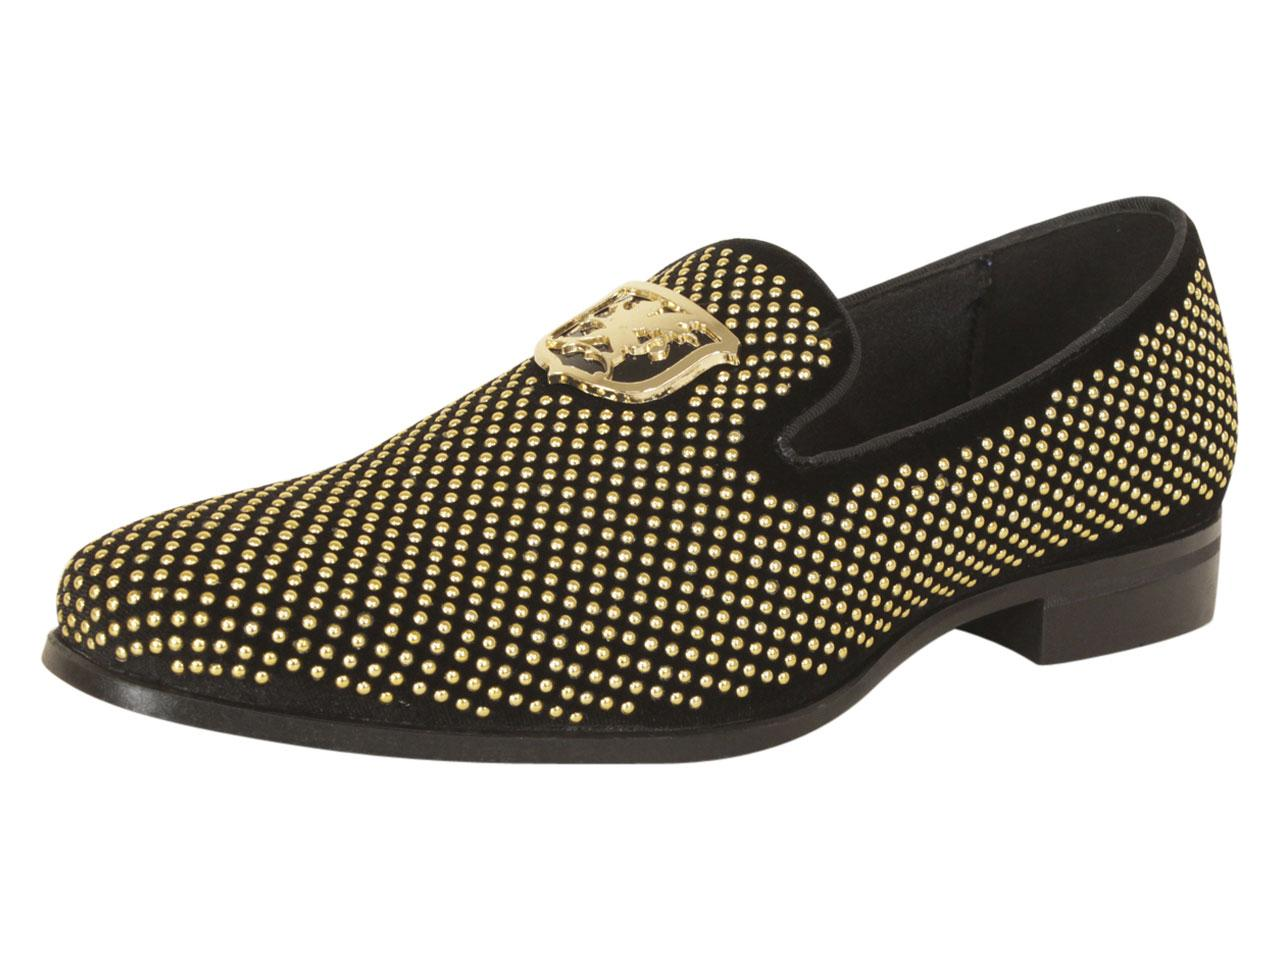 Image of - Black/Gold - 8 D(M) US